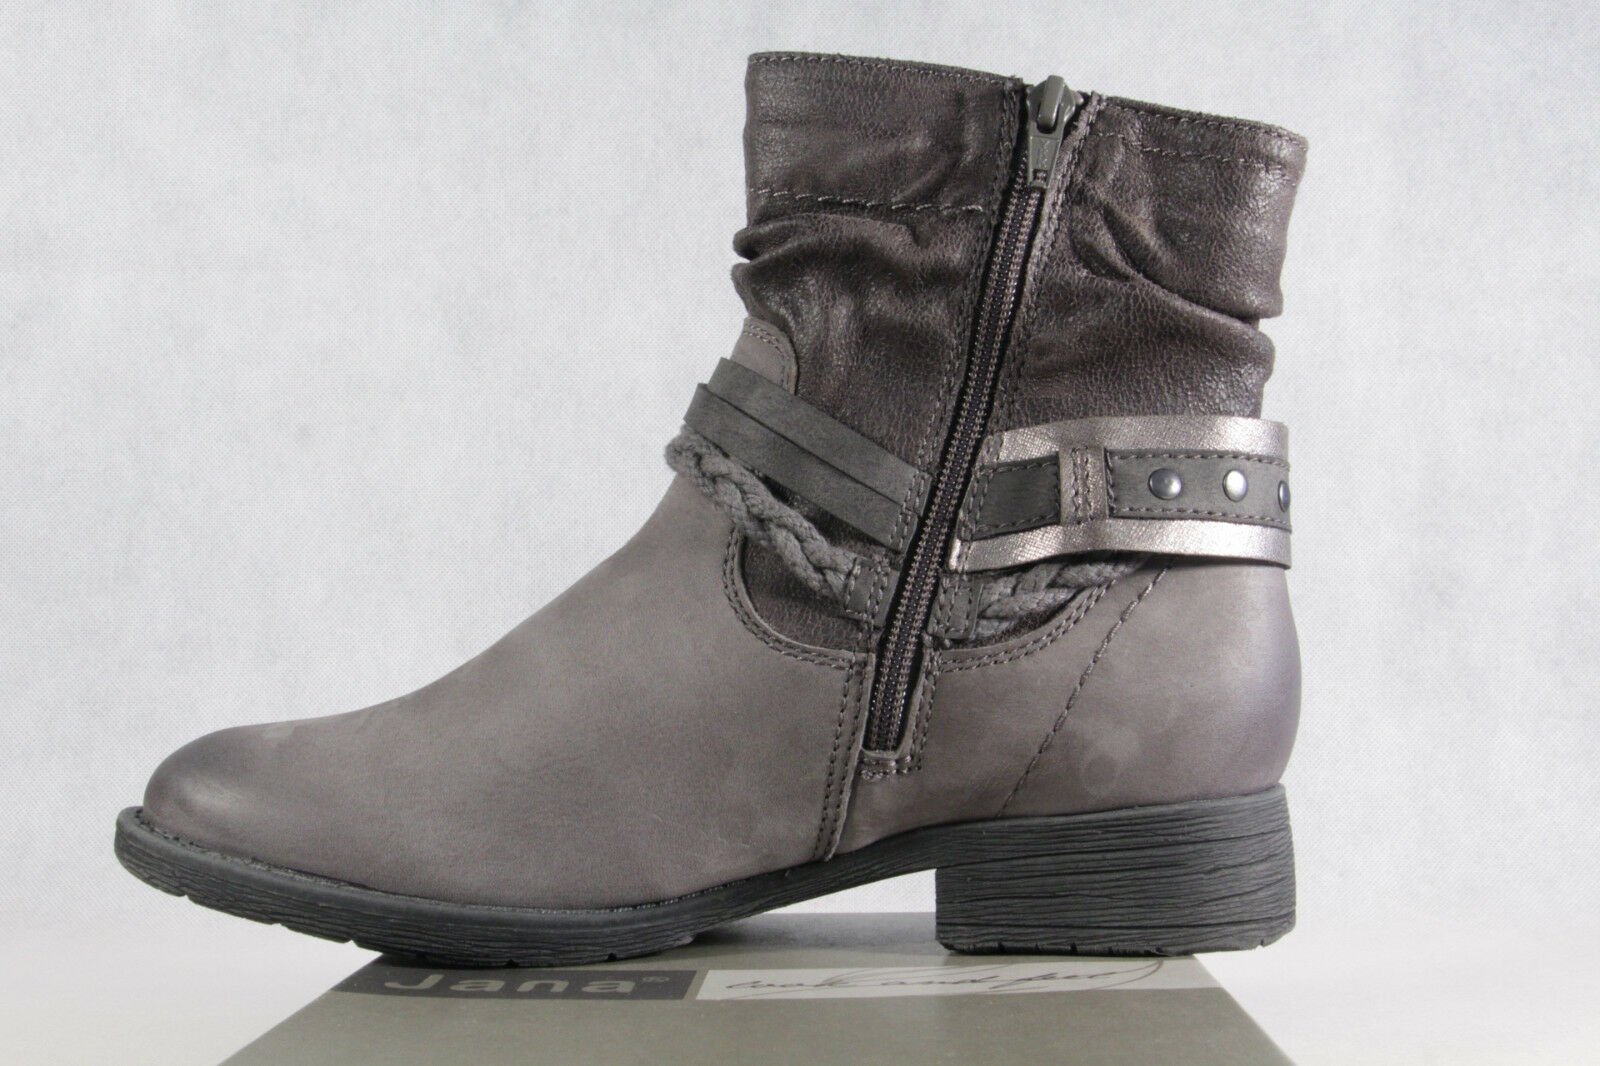 wholesale dealer 14815 56198 Jana Winter Boots Lace up Boots Boots Boots Boots Grey Real ...